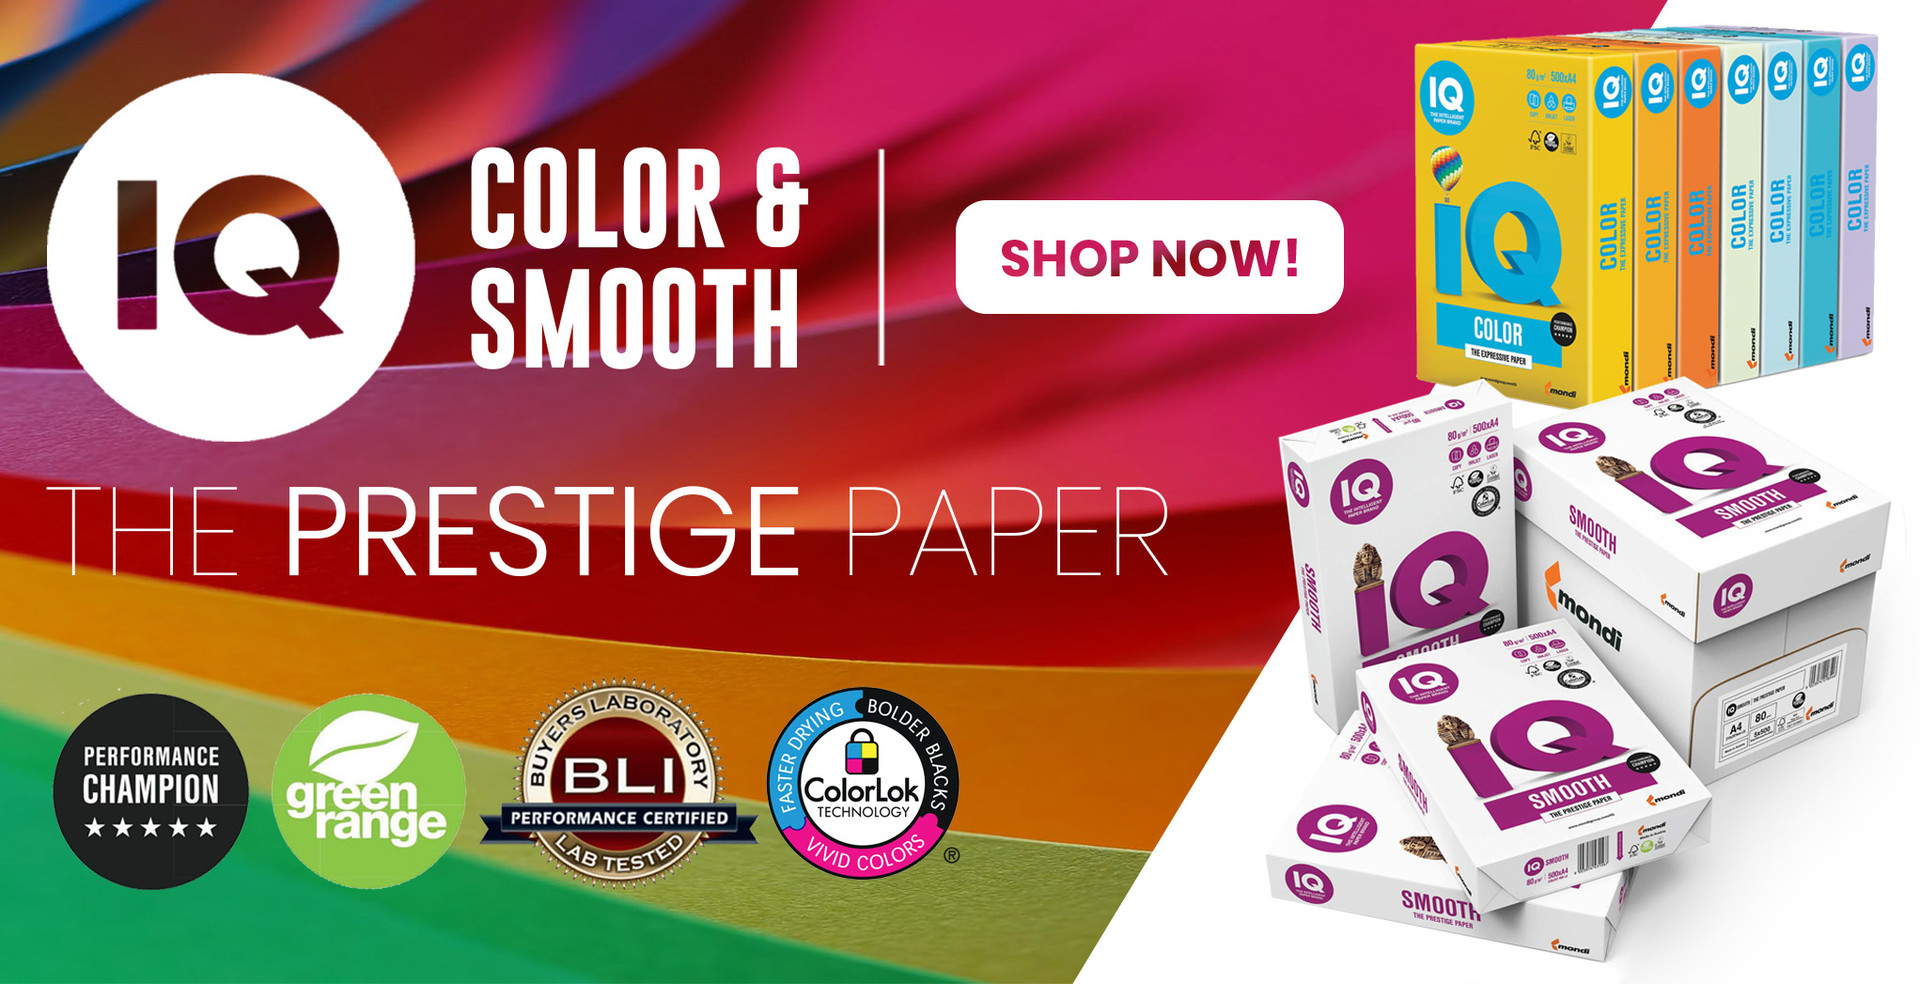 IQ Smooth & Color Paper - Now in Stock